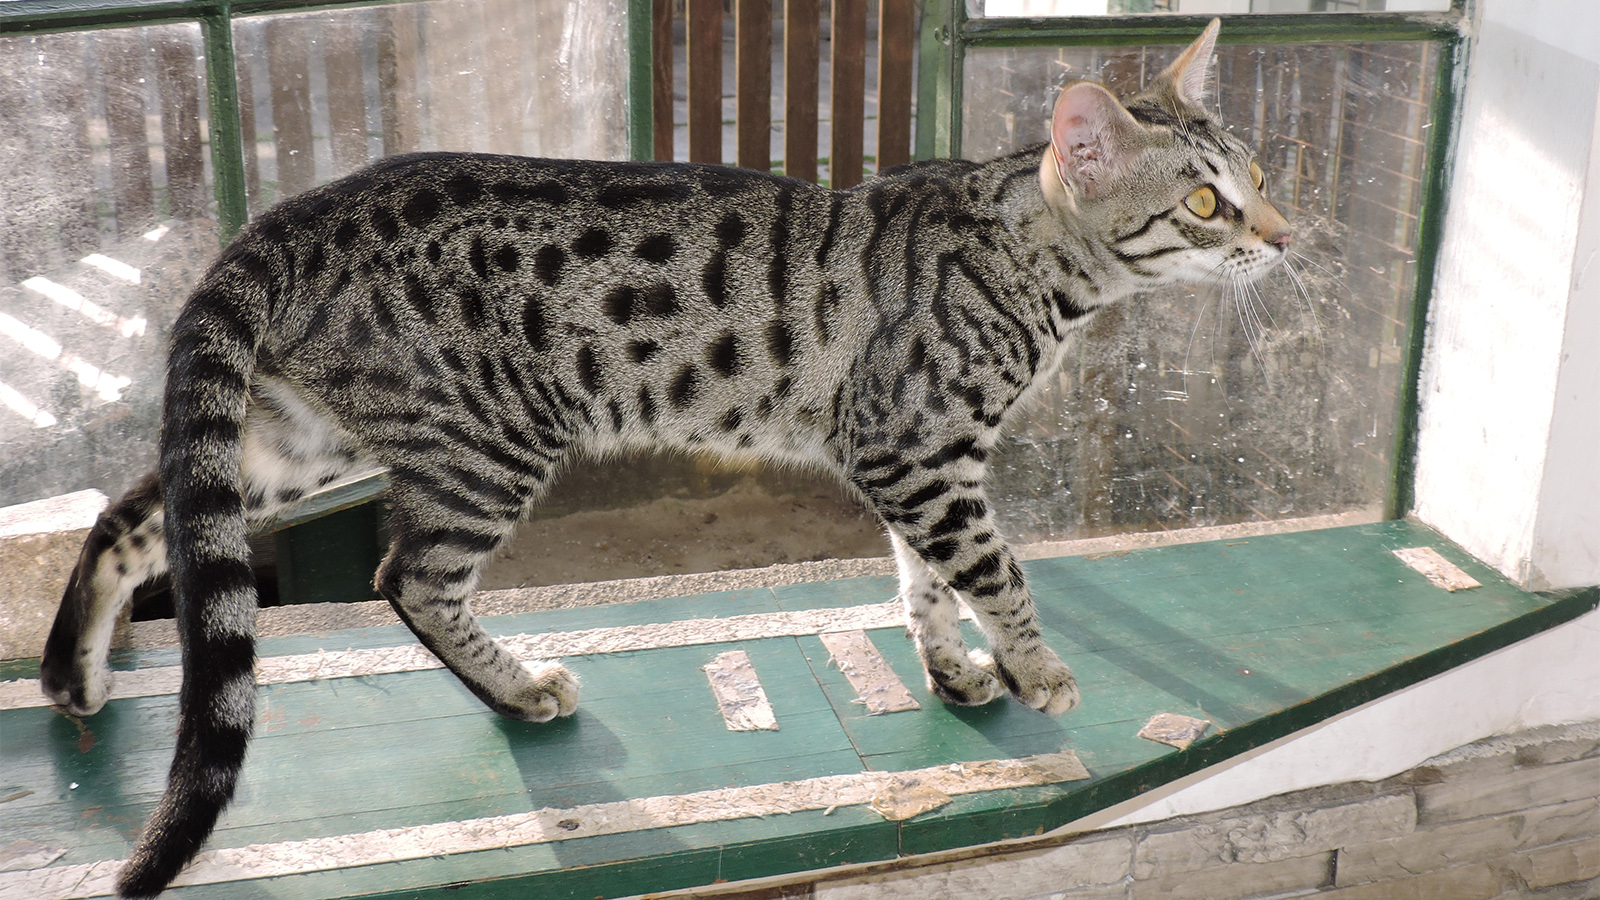 Exotic or Exploited? The Controversial Savannah Cat